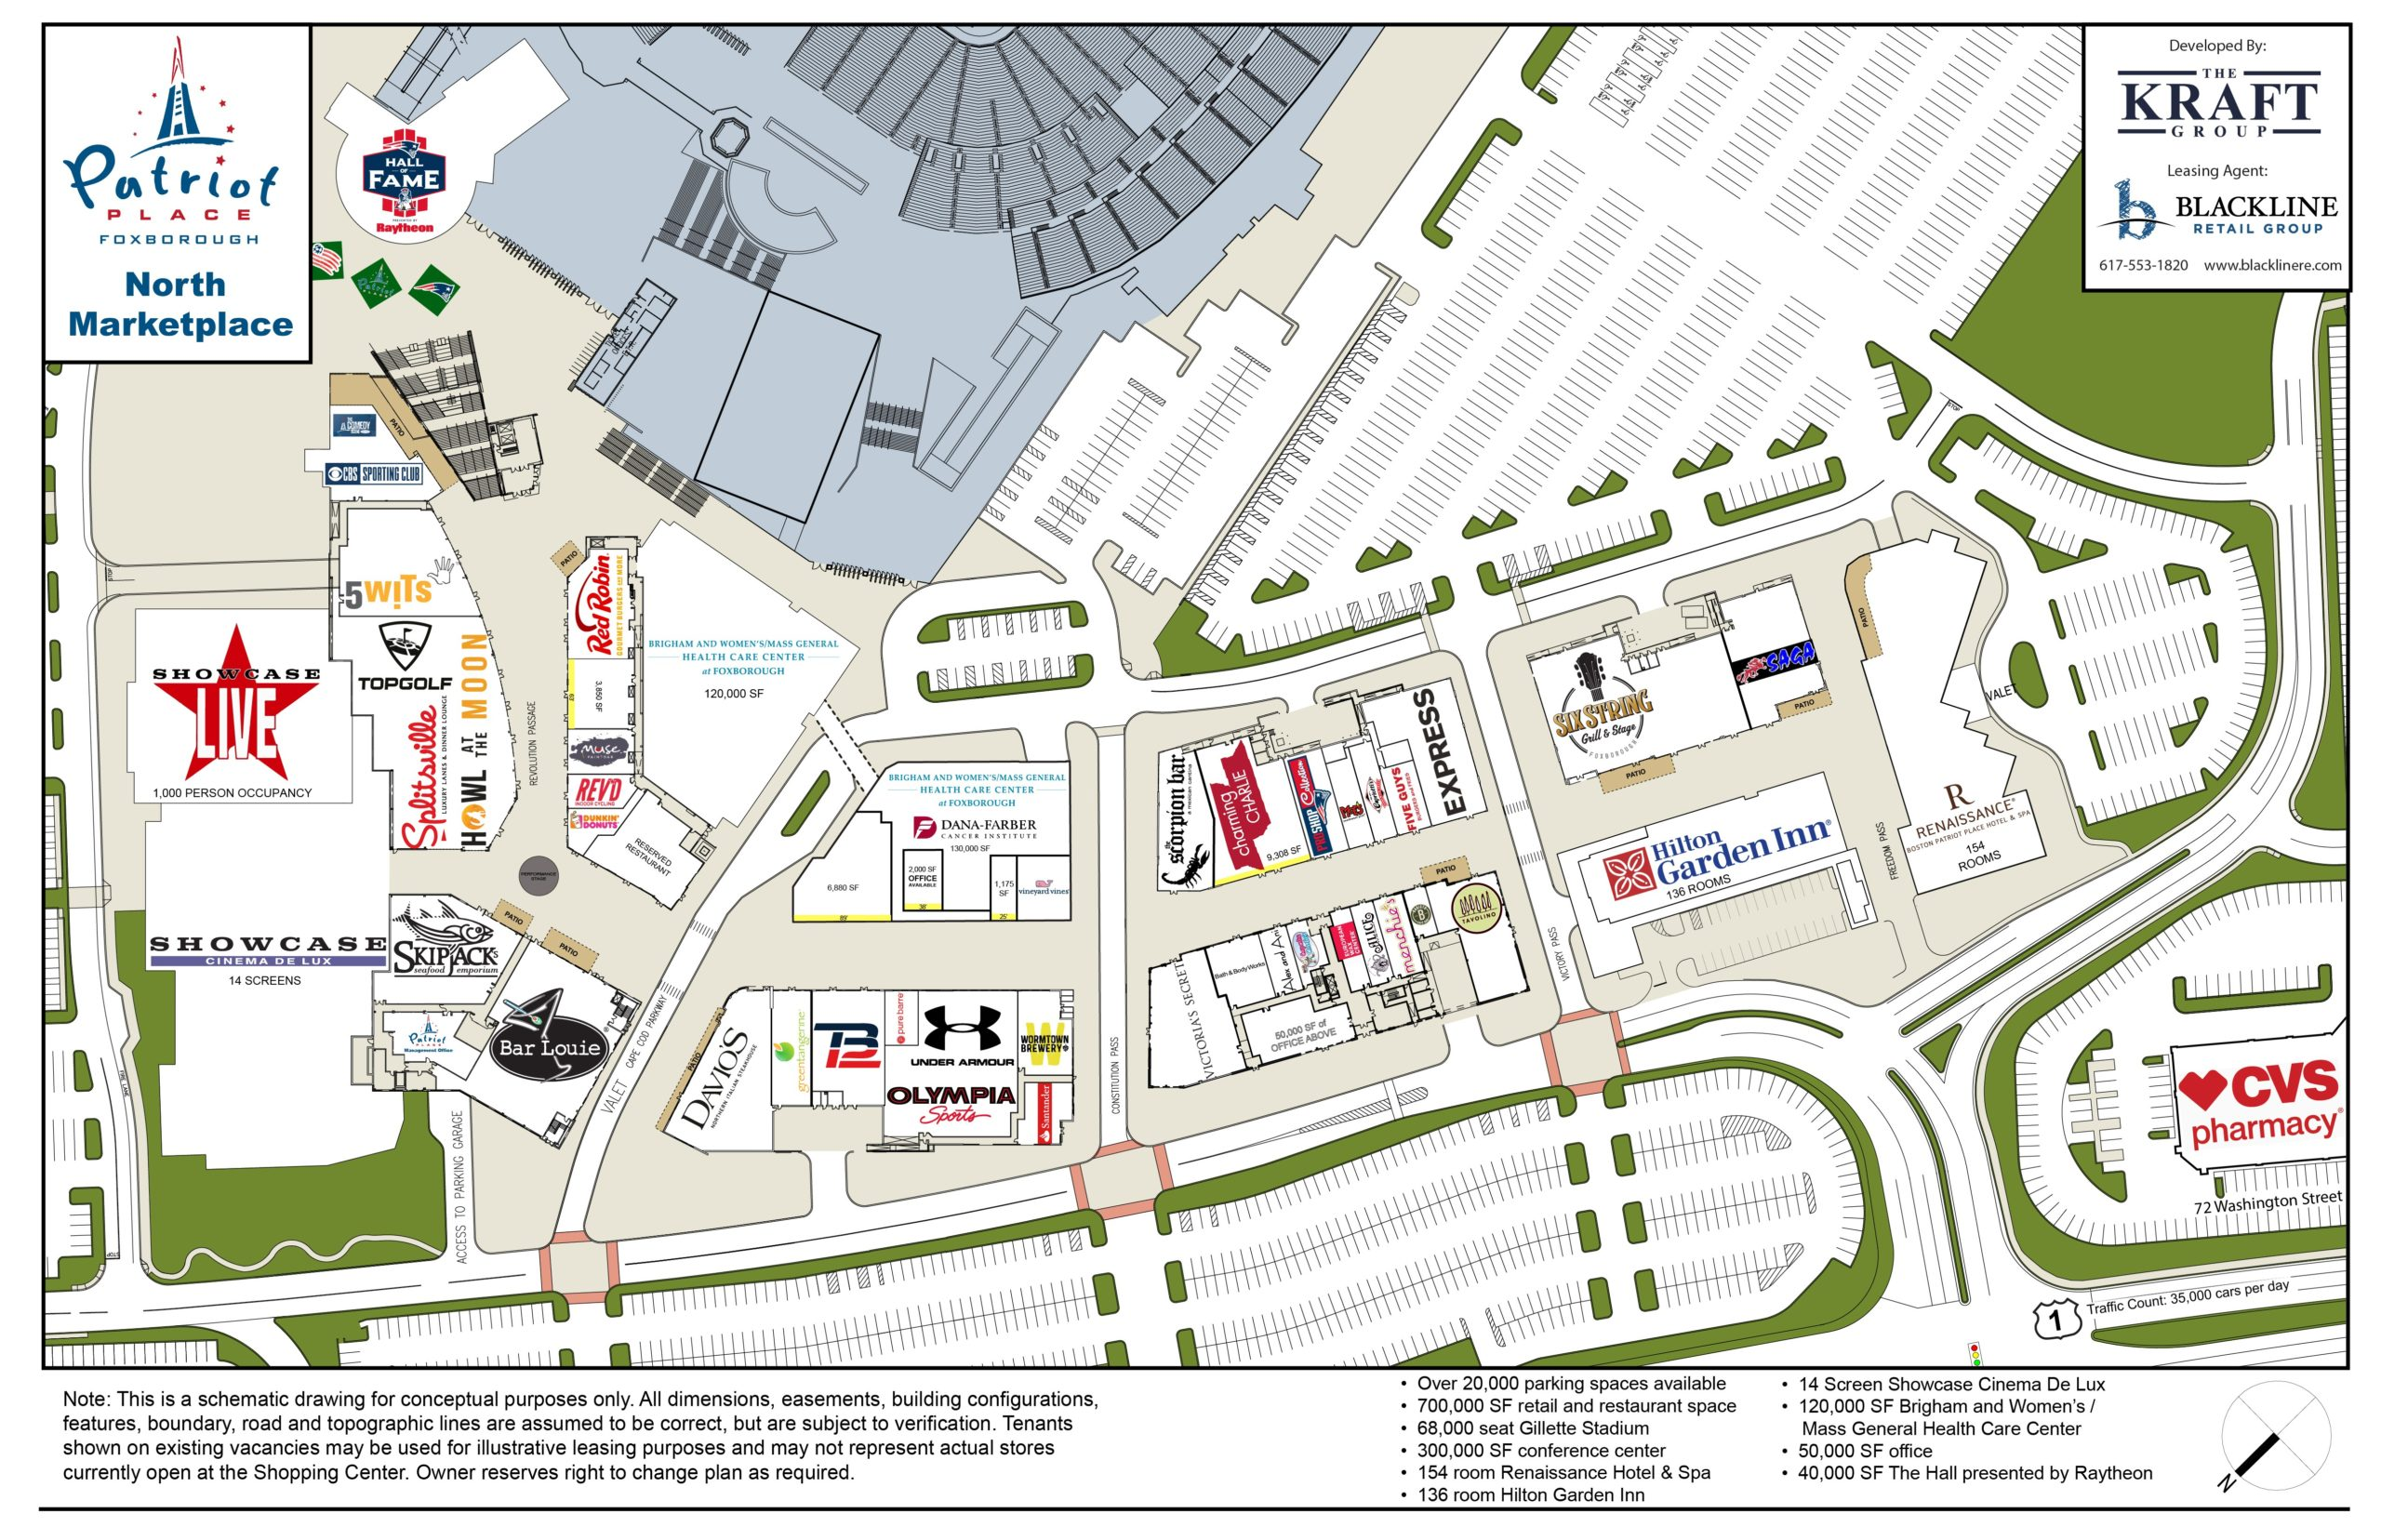 Patriot Place Map. Retail Space at Patriot Place available through Blackline Retail Group